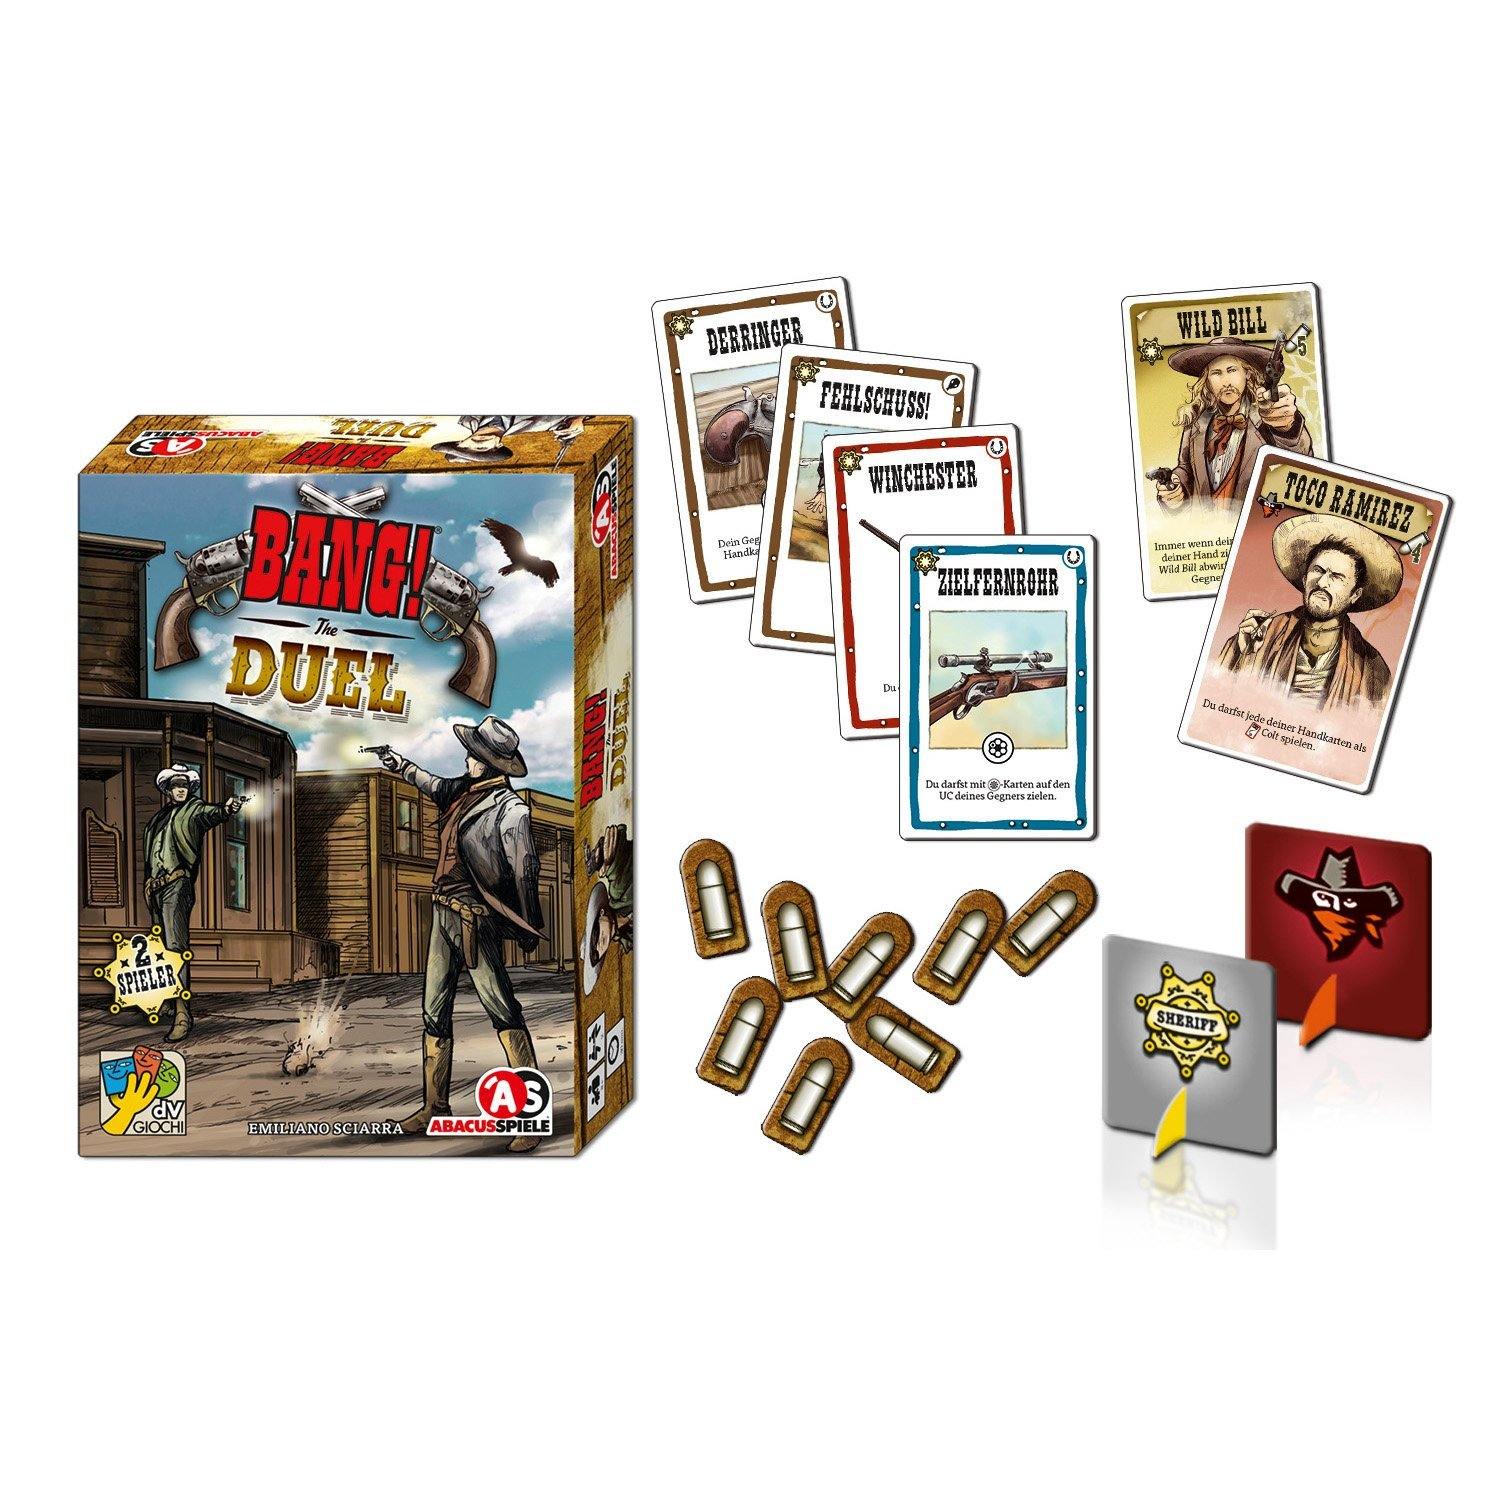 ABACUSSPIELE 38161 - Bang. The Duel,: Amazon.es: Juguetes y ...